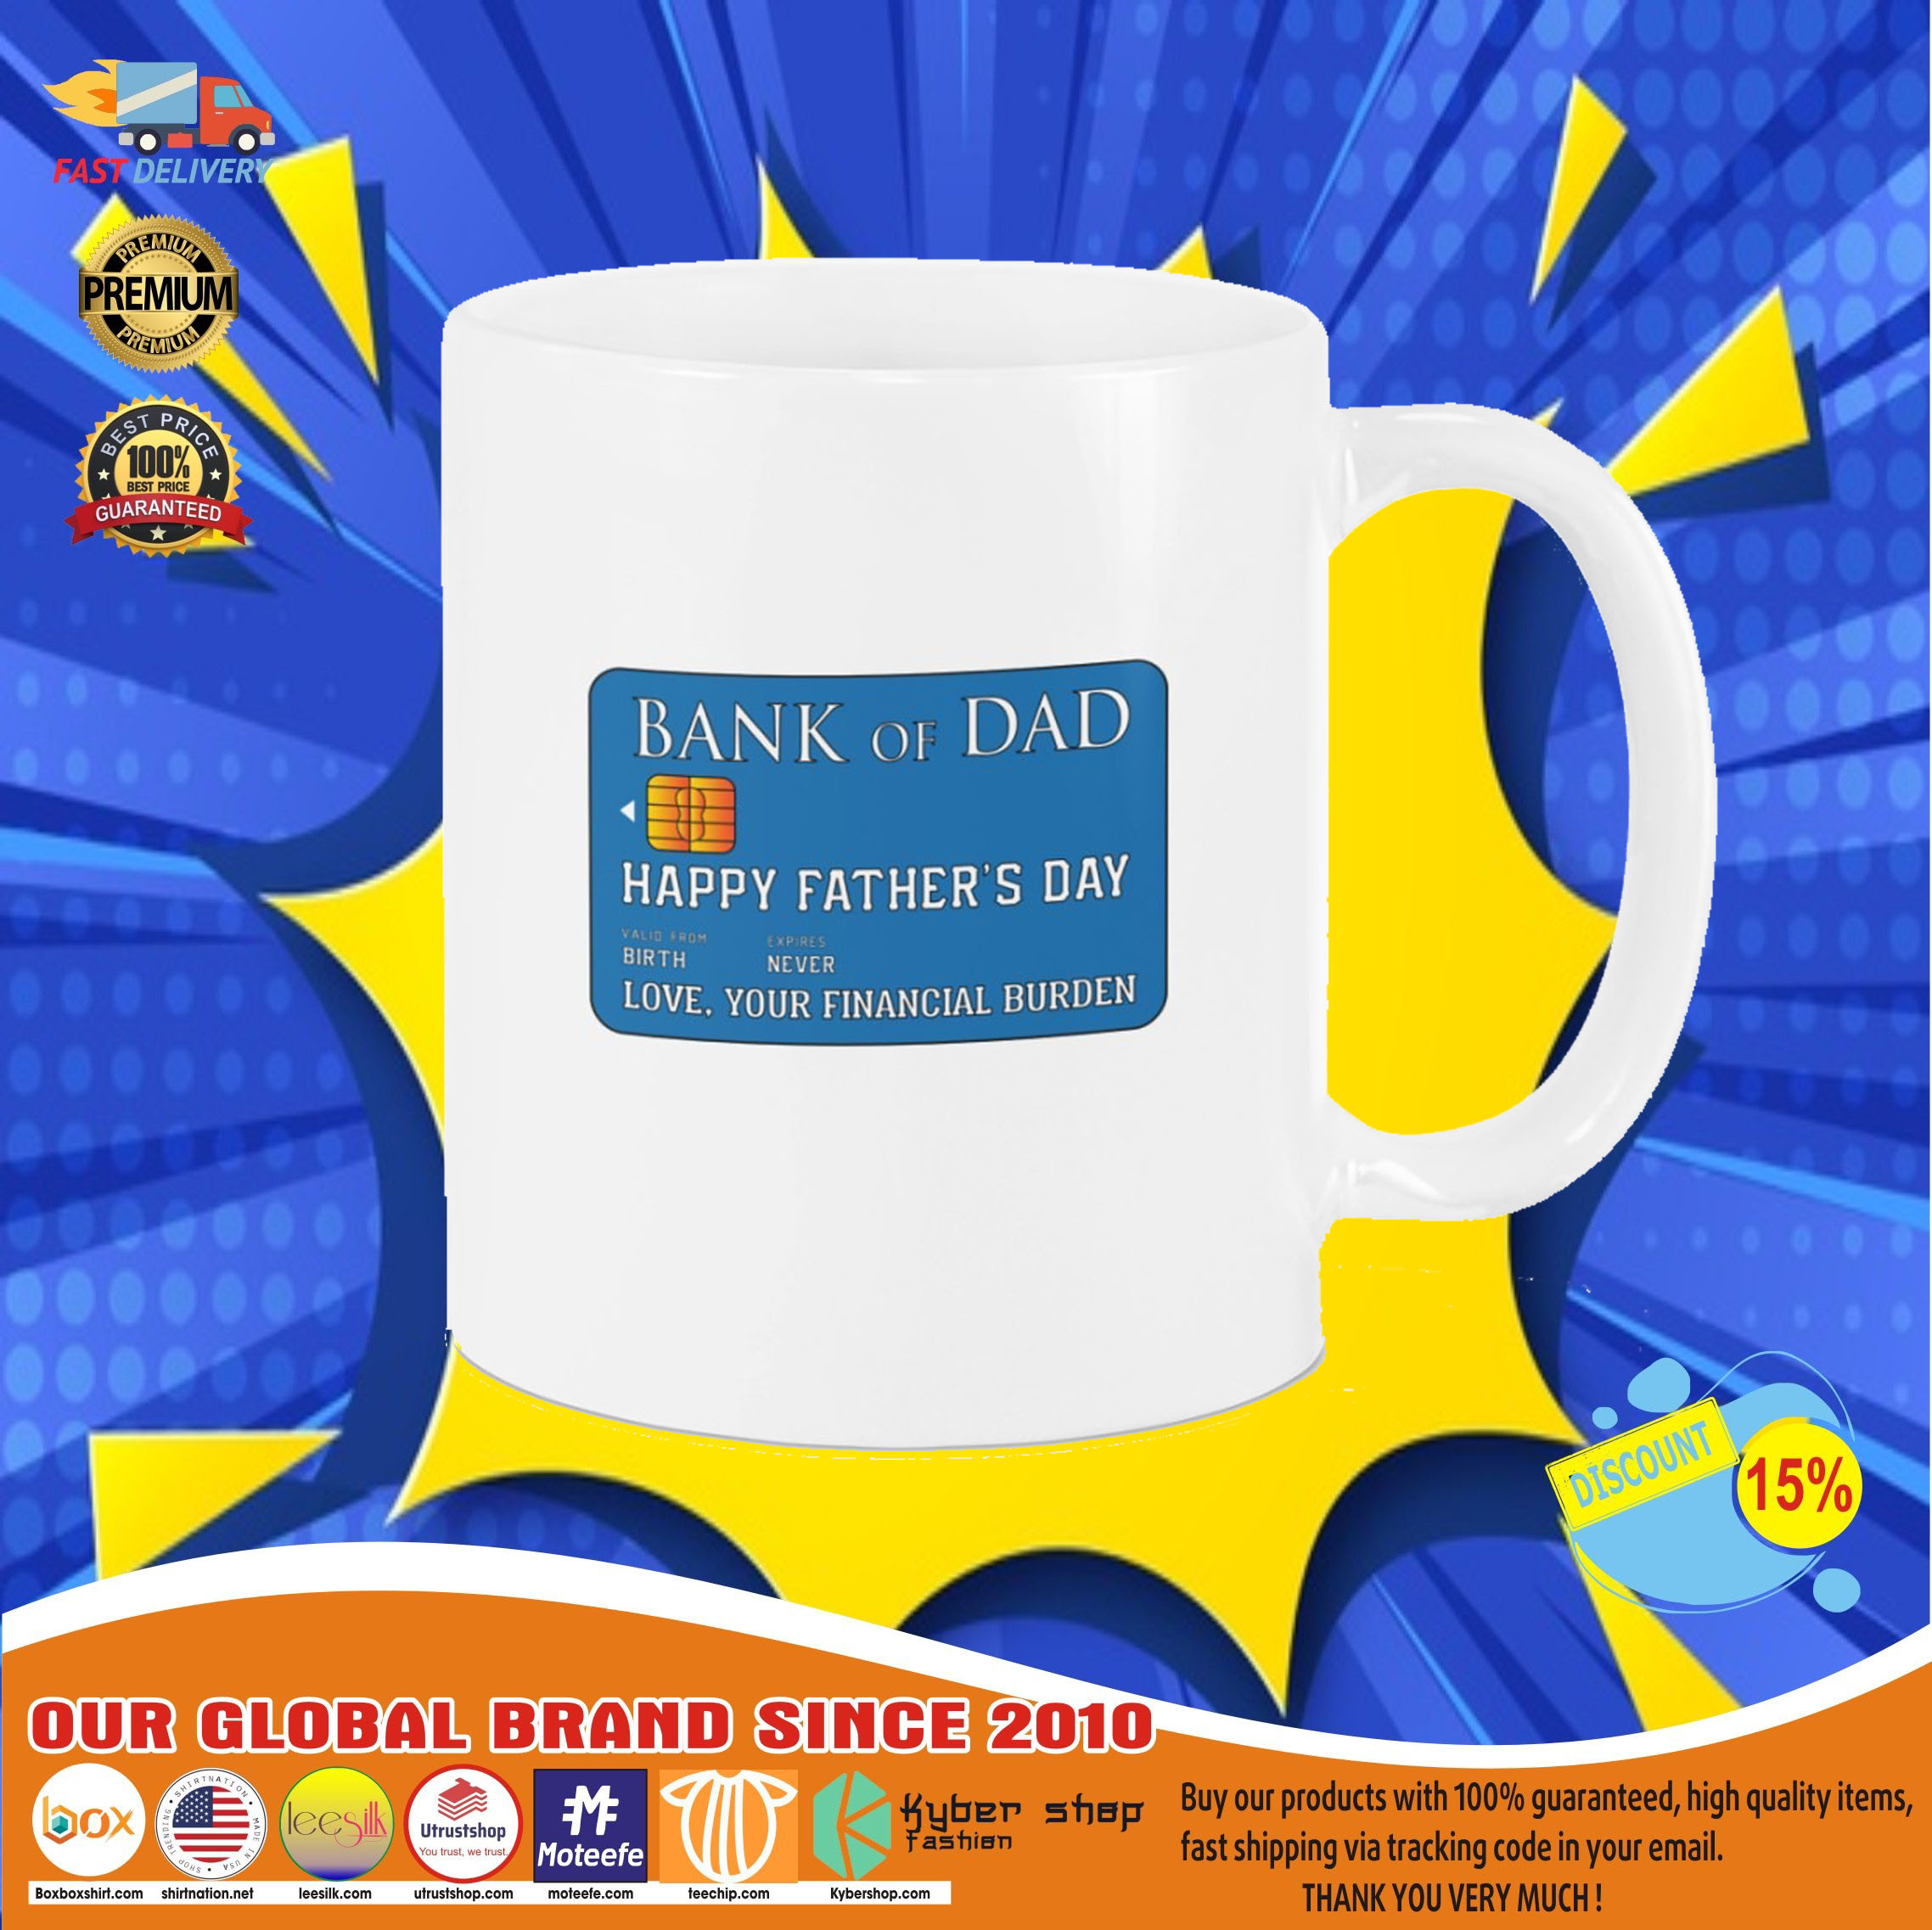 Bank of dad happy father's day love your financial burden mug